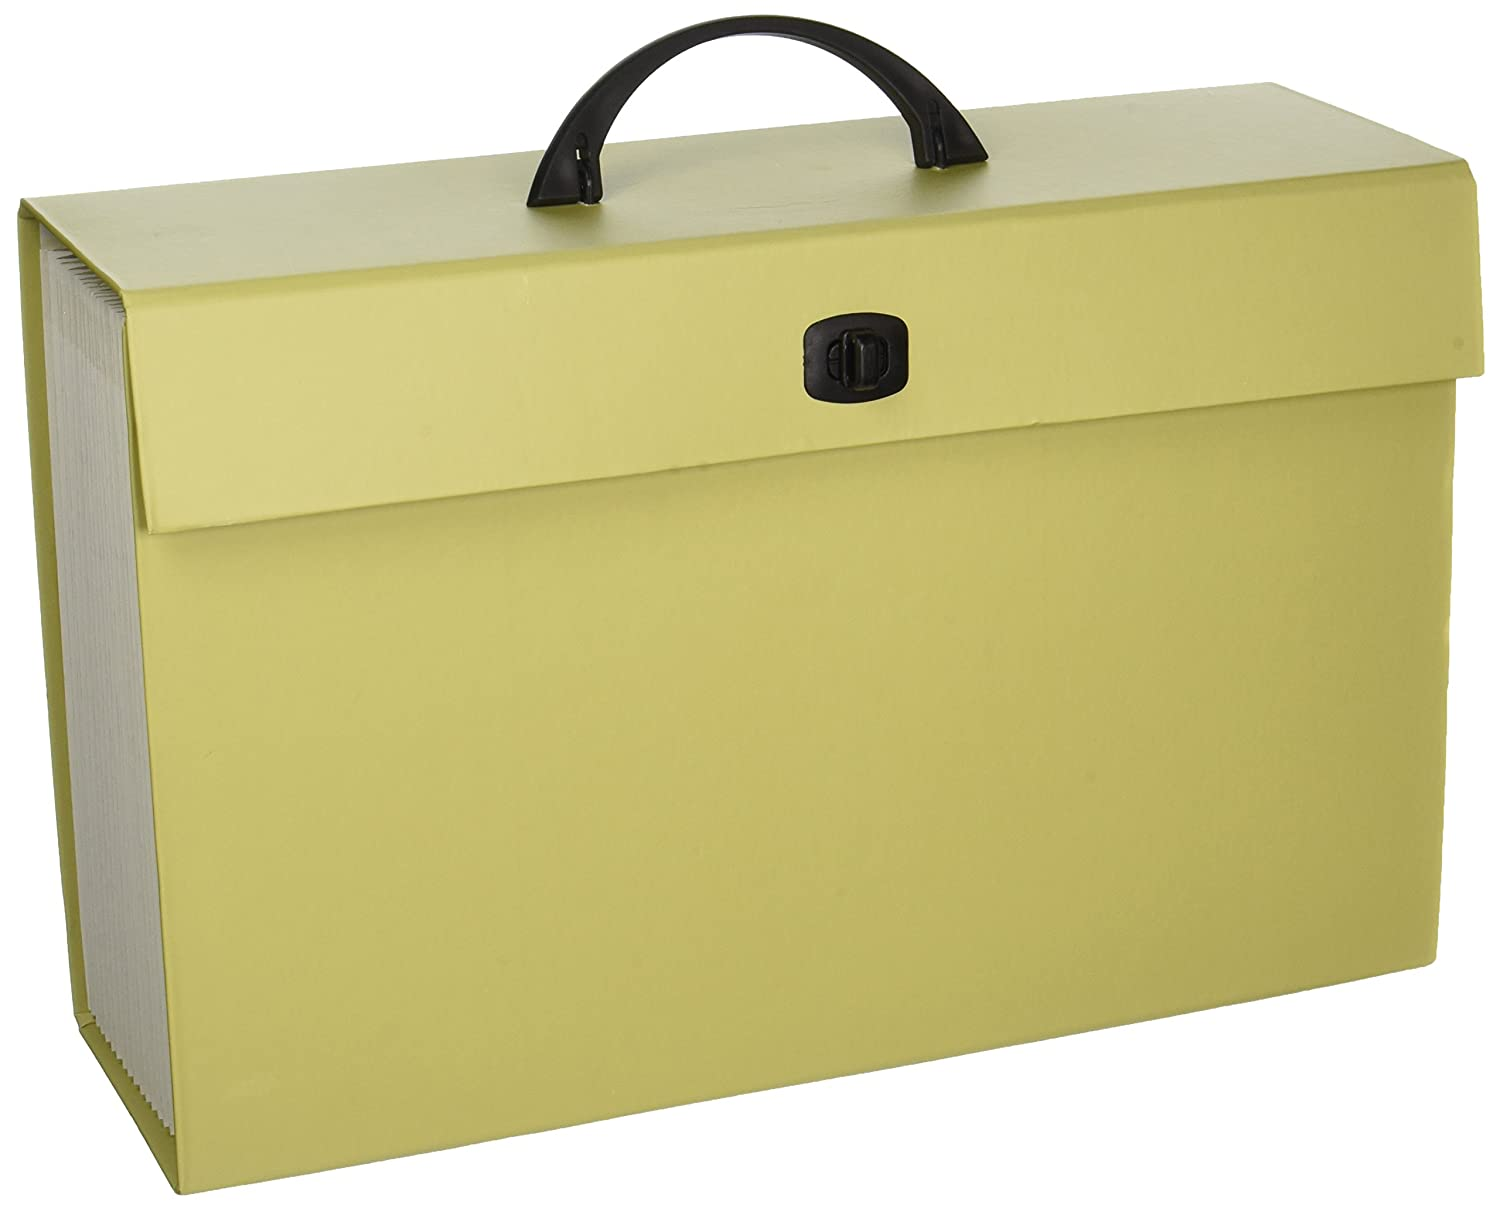 Smead Portable Expanding File Box, 19 Pockets, Blank Tabs, Latch Closure, Legal Size, 1 Count, Color Varies (70806)